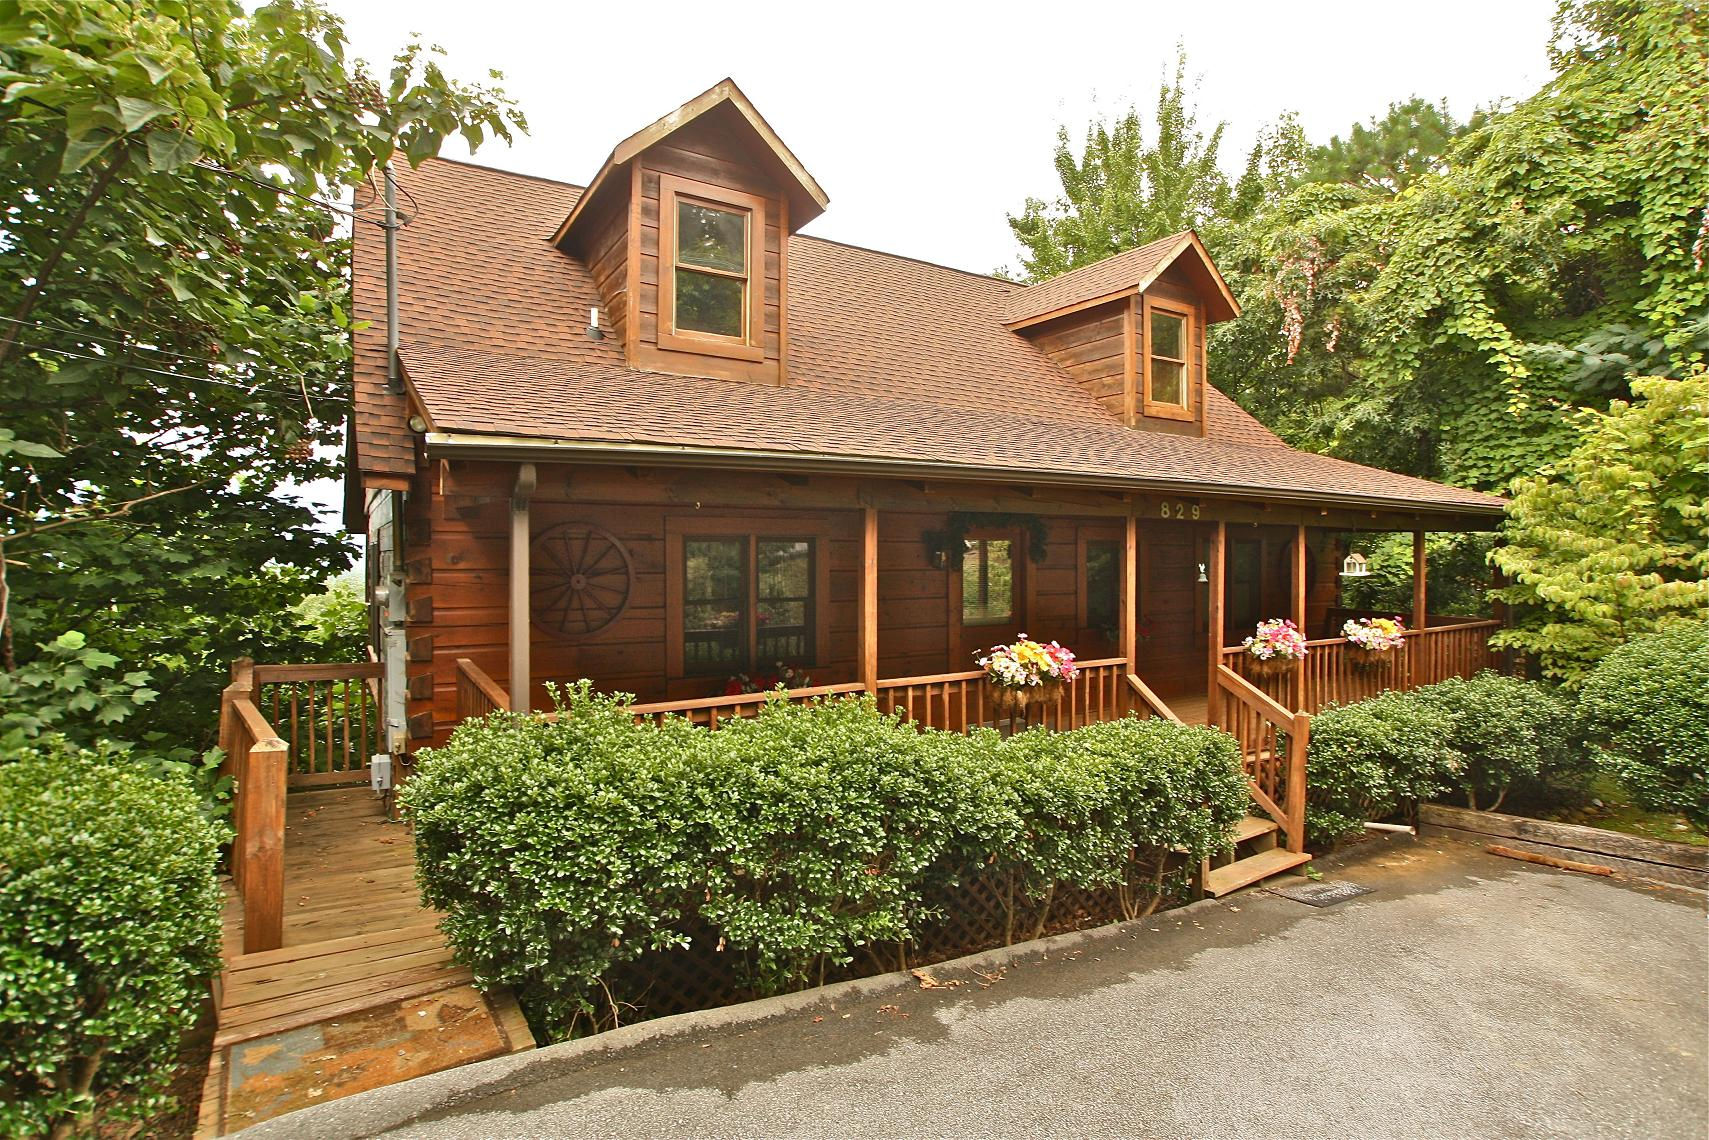 2 bedroom cabins two br cabin rentals in gatlinburg tn for Two bedroom cabins